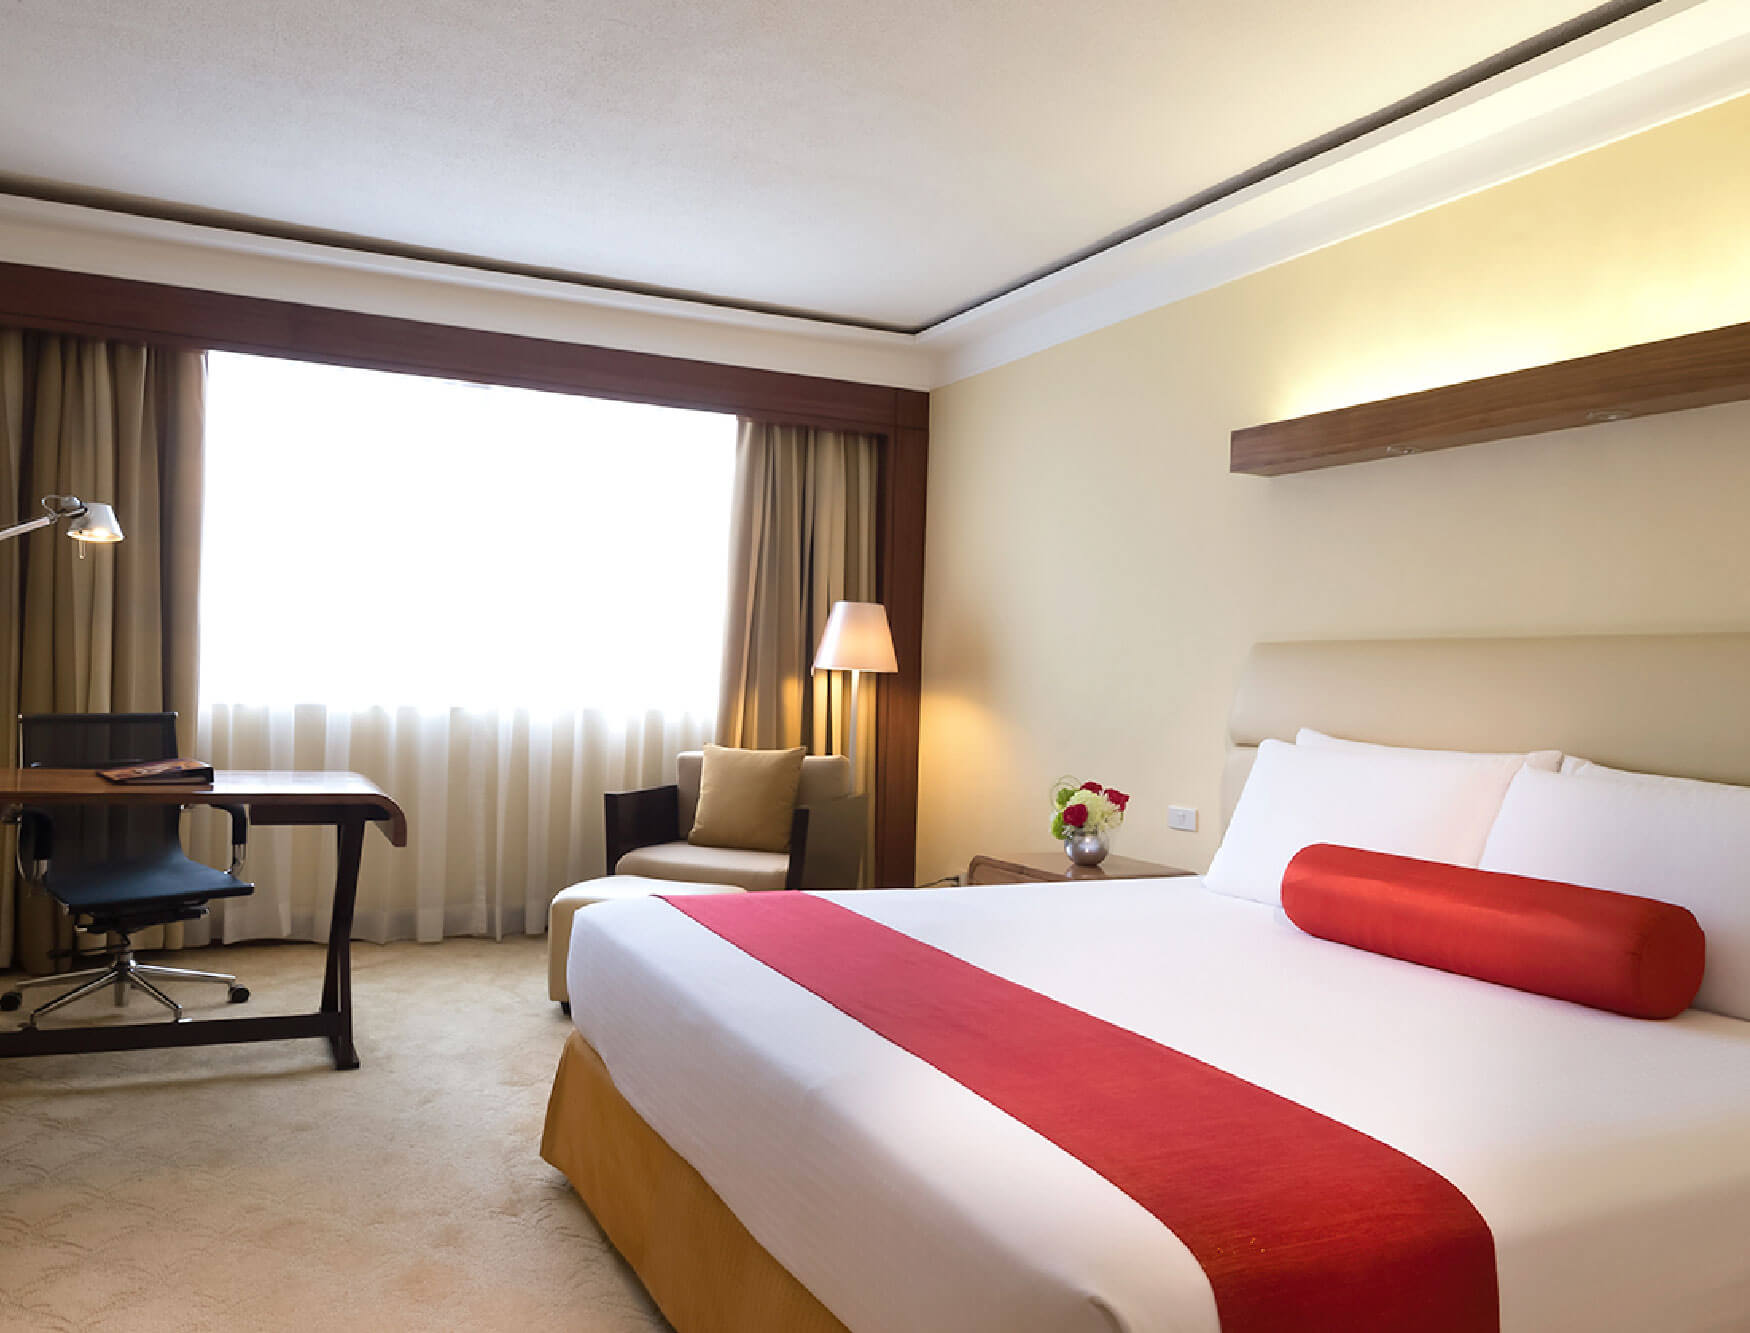 Marco Polo Plaza Cebu sets discounts on room package, food offer